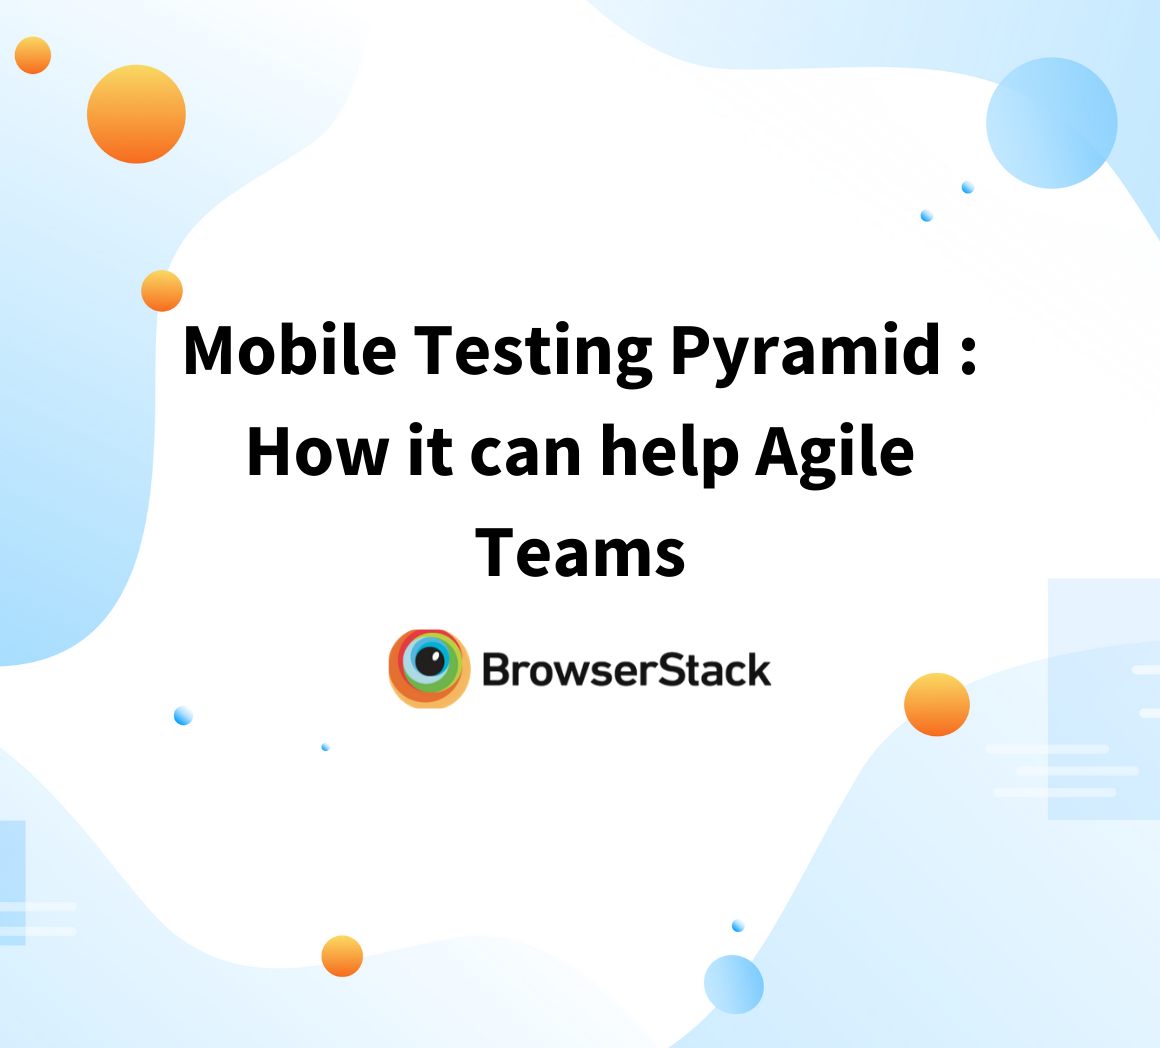 Mobile Testing Pyramid: How it can help Agile Teams